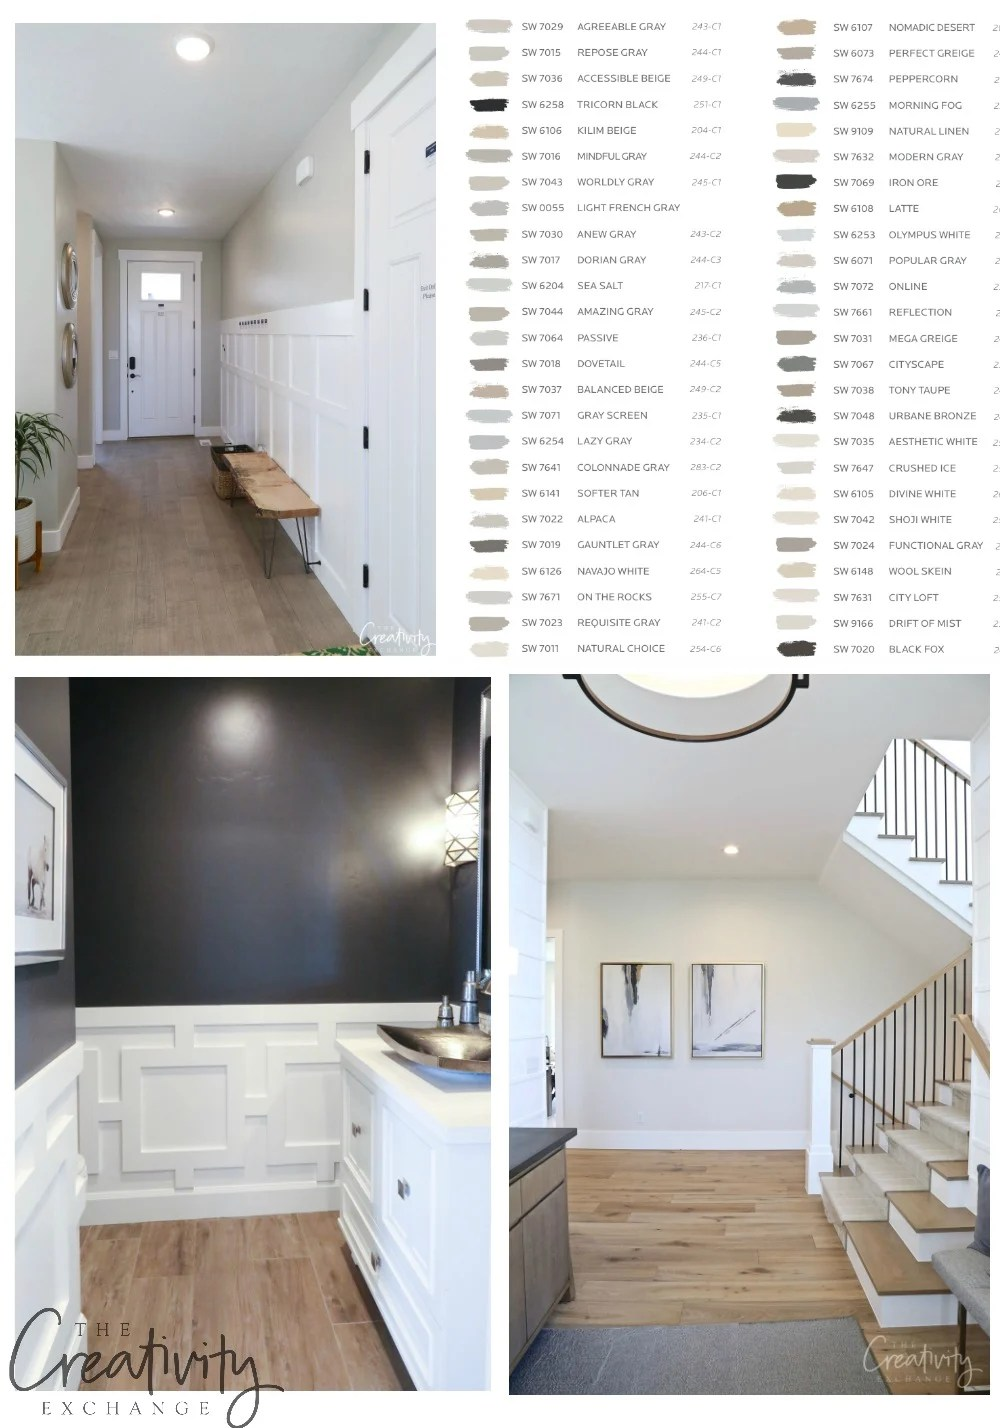 50 Most Popular And Bestselling Sherwin Williams Paint Colors